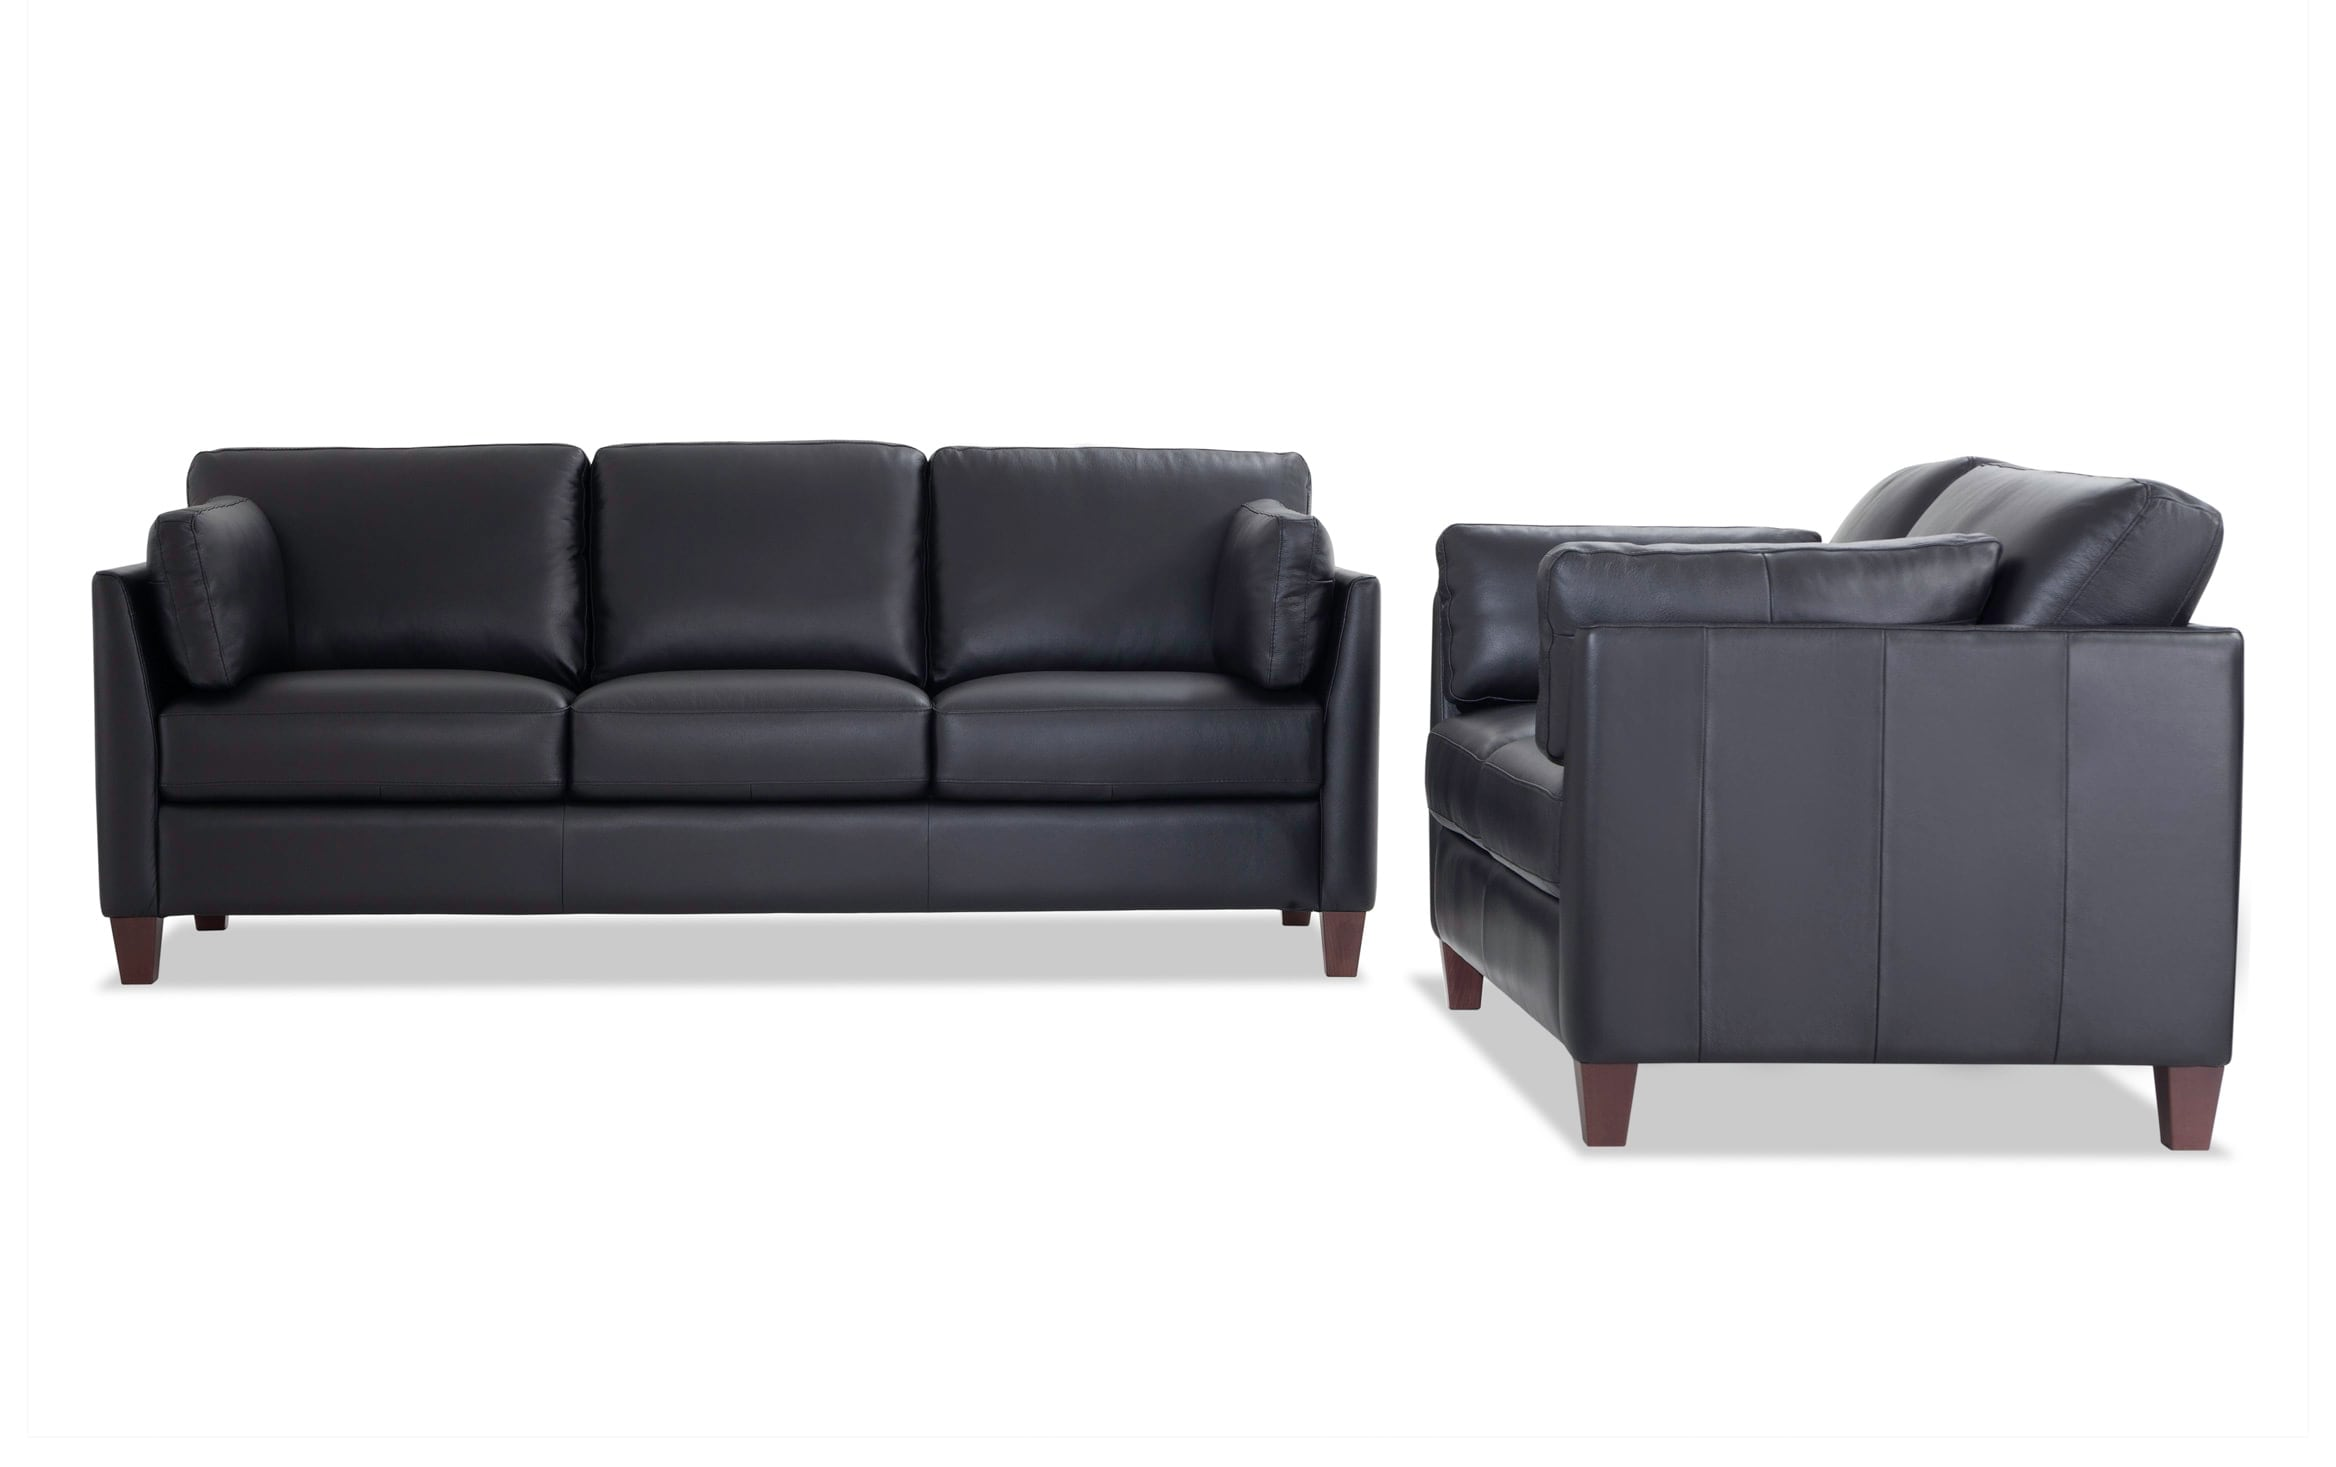 - Antonio Black Leather Bob-O-Pedic Queen Sleeper Sofa & Loveseat